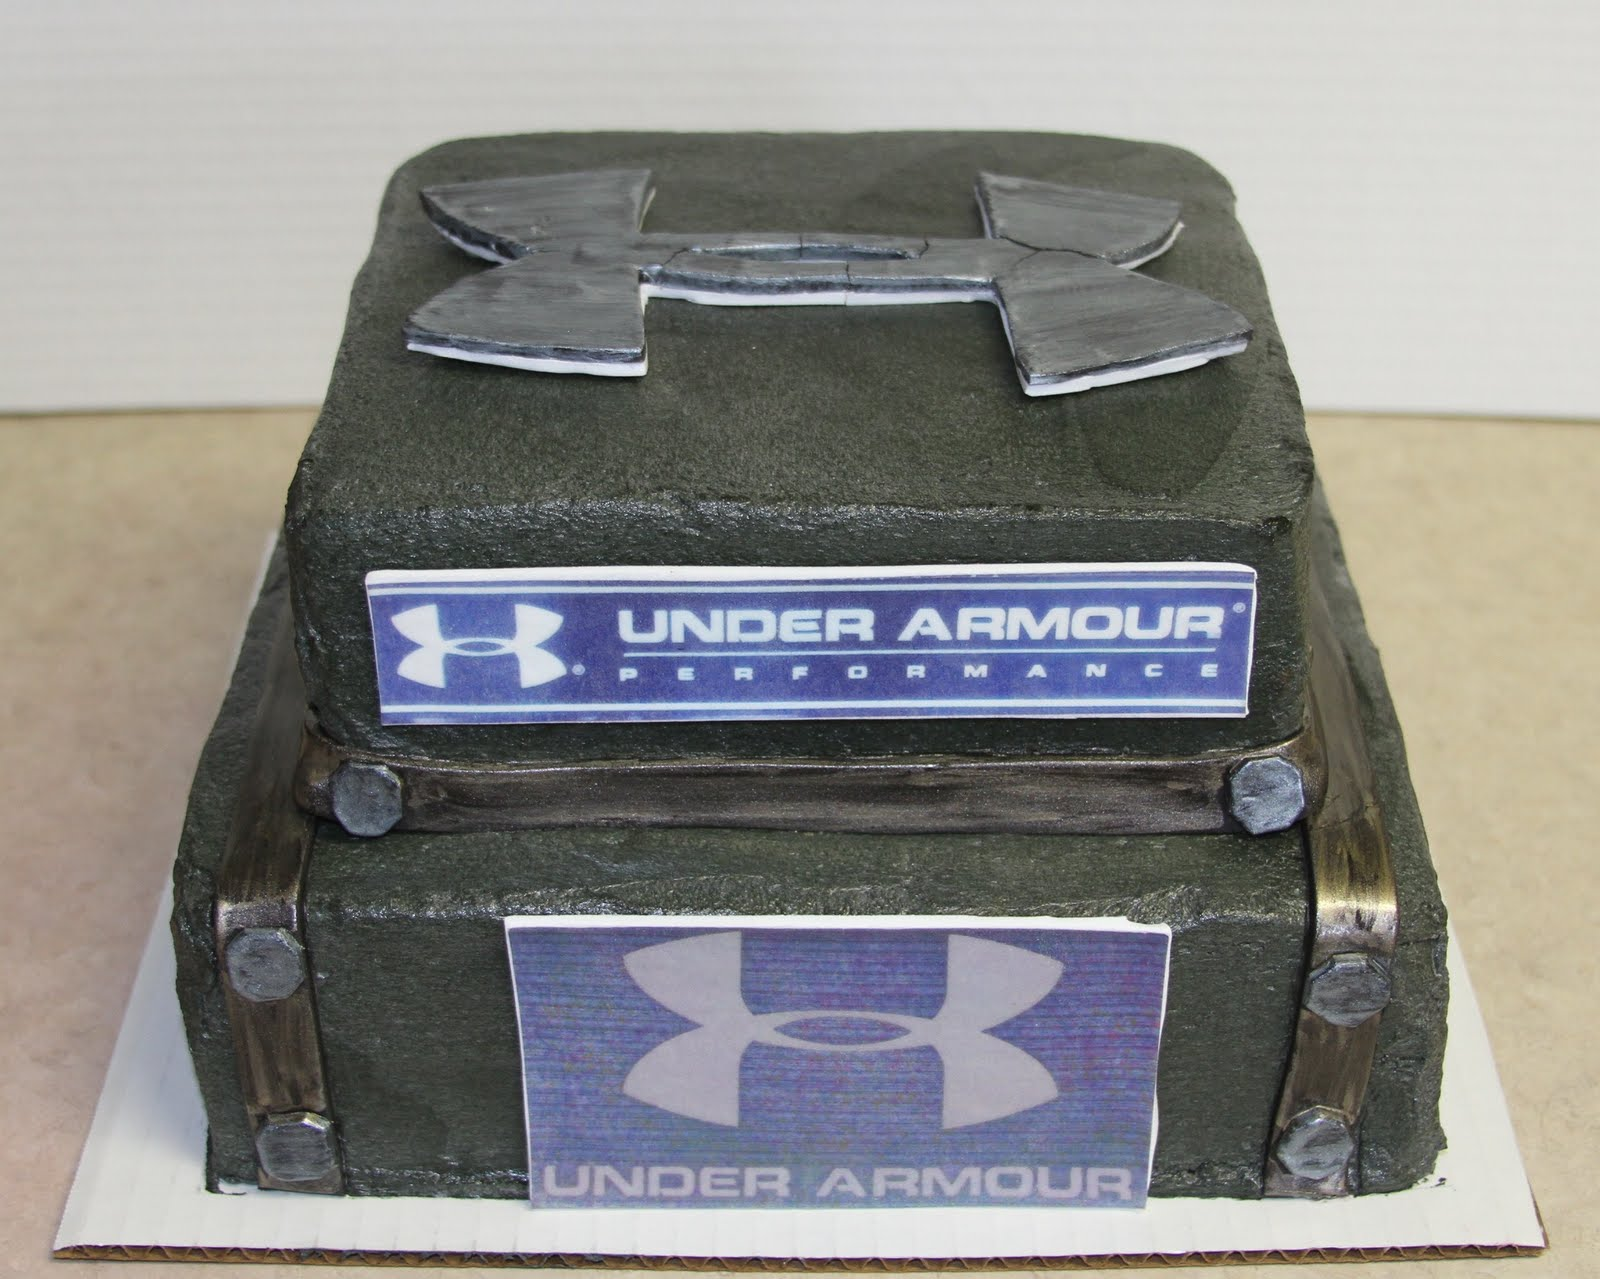 Michele Robinson Cakes Under Armour Cake